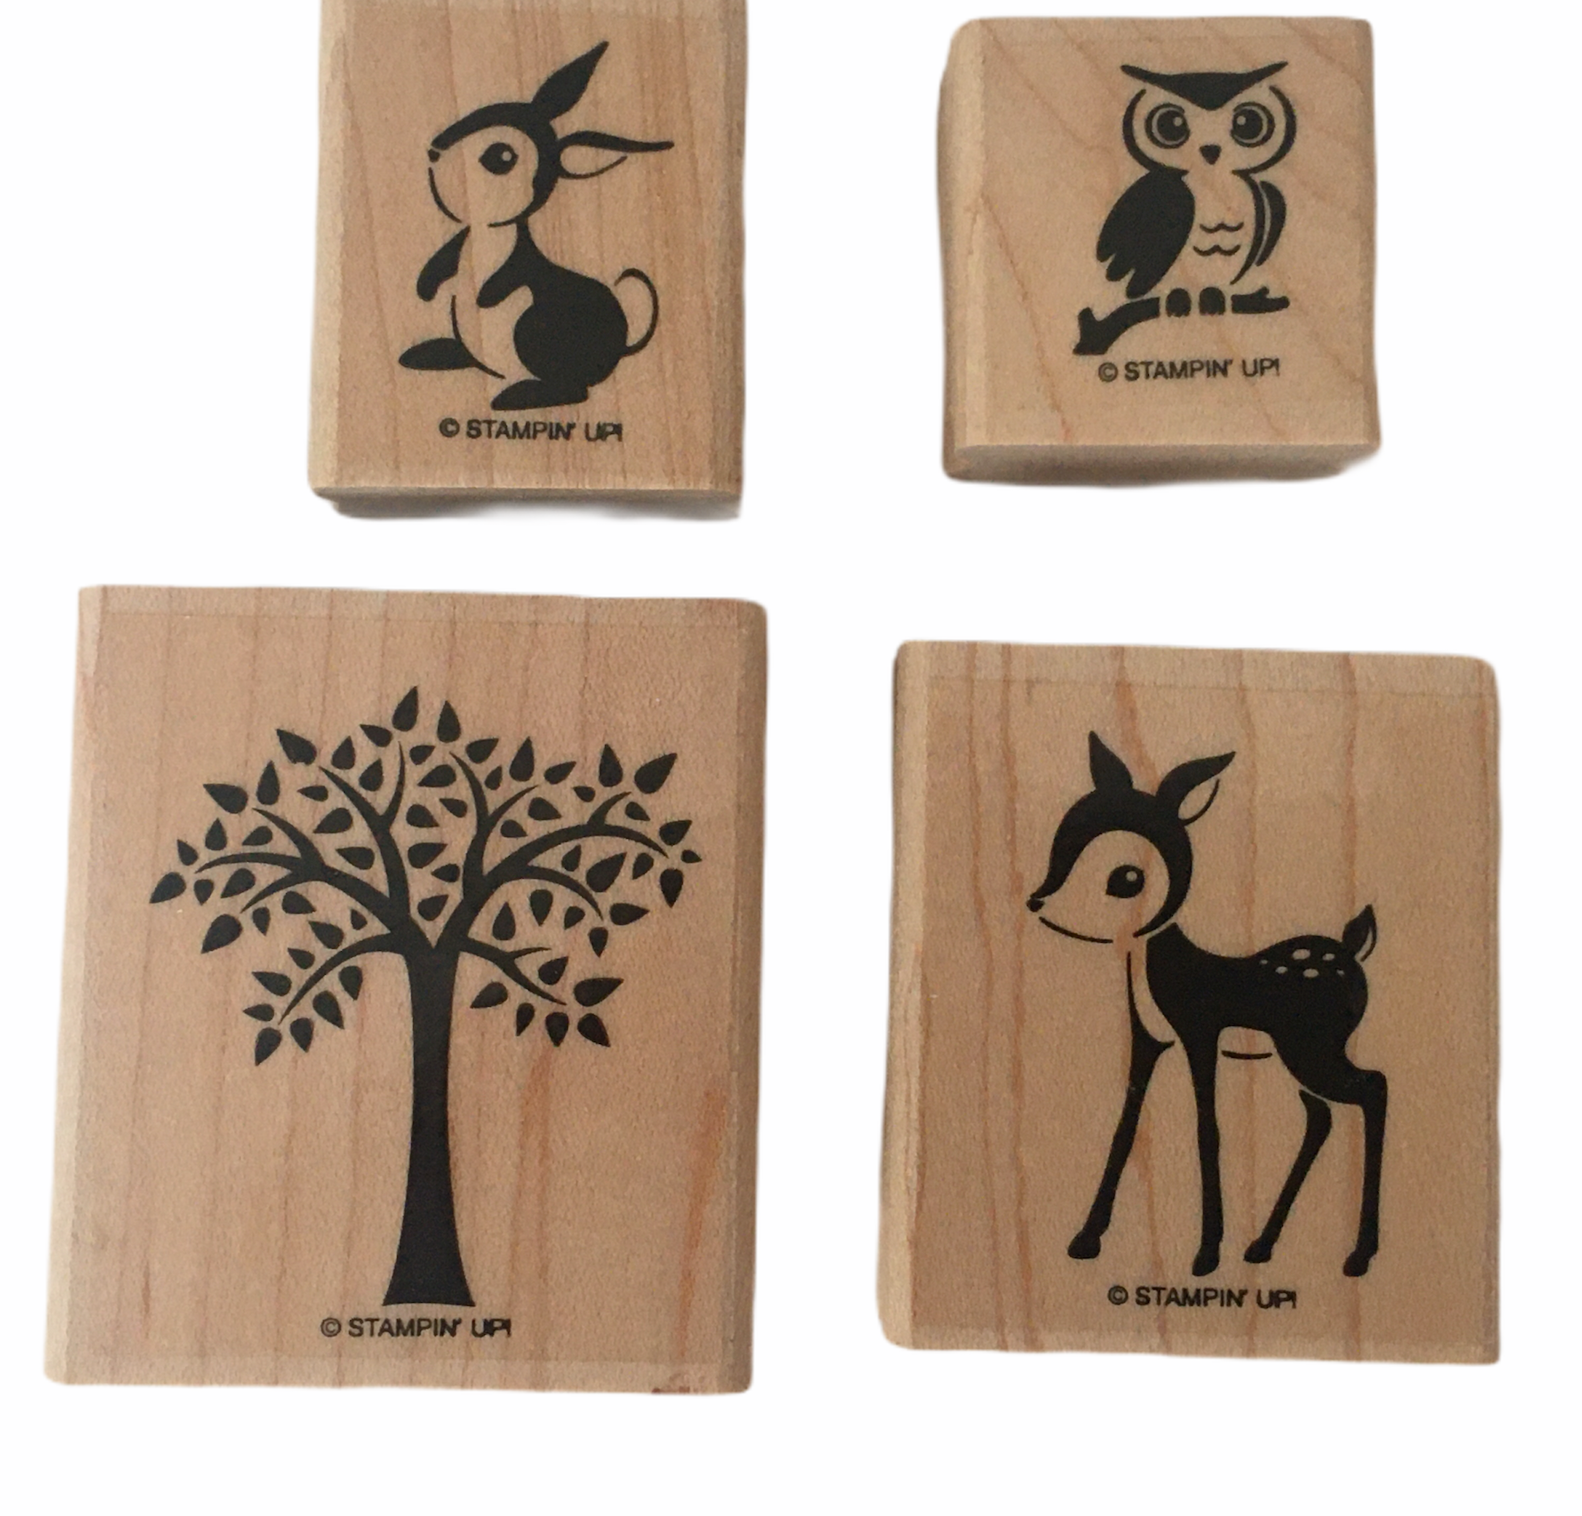 Primary image for Stampin Up Stamp Set 4 Forest Friends Bunny Rabbit Owl Deer Tree Card Making Art